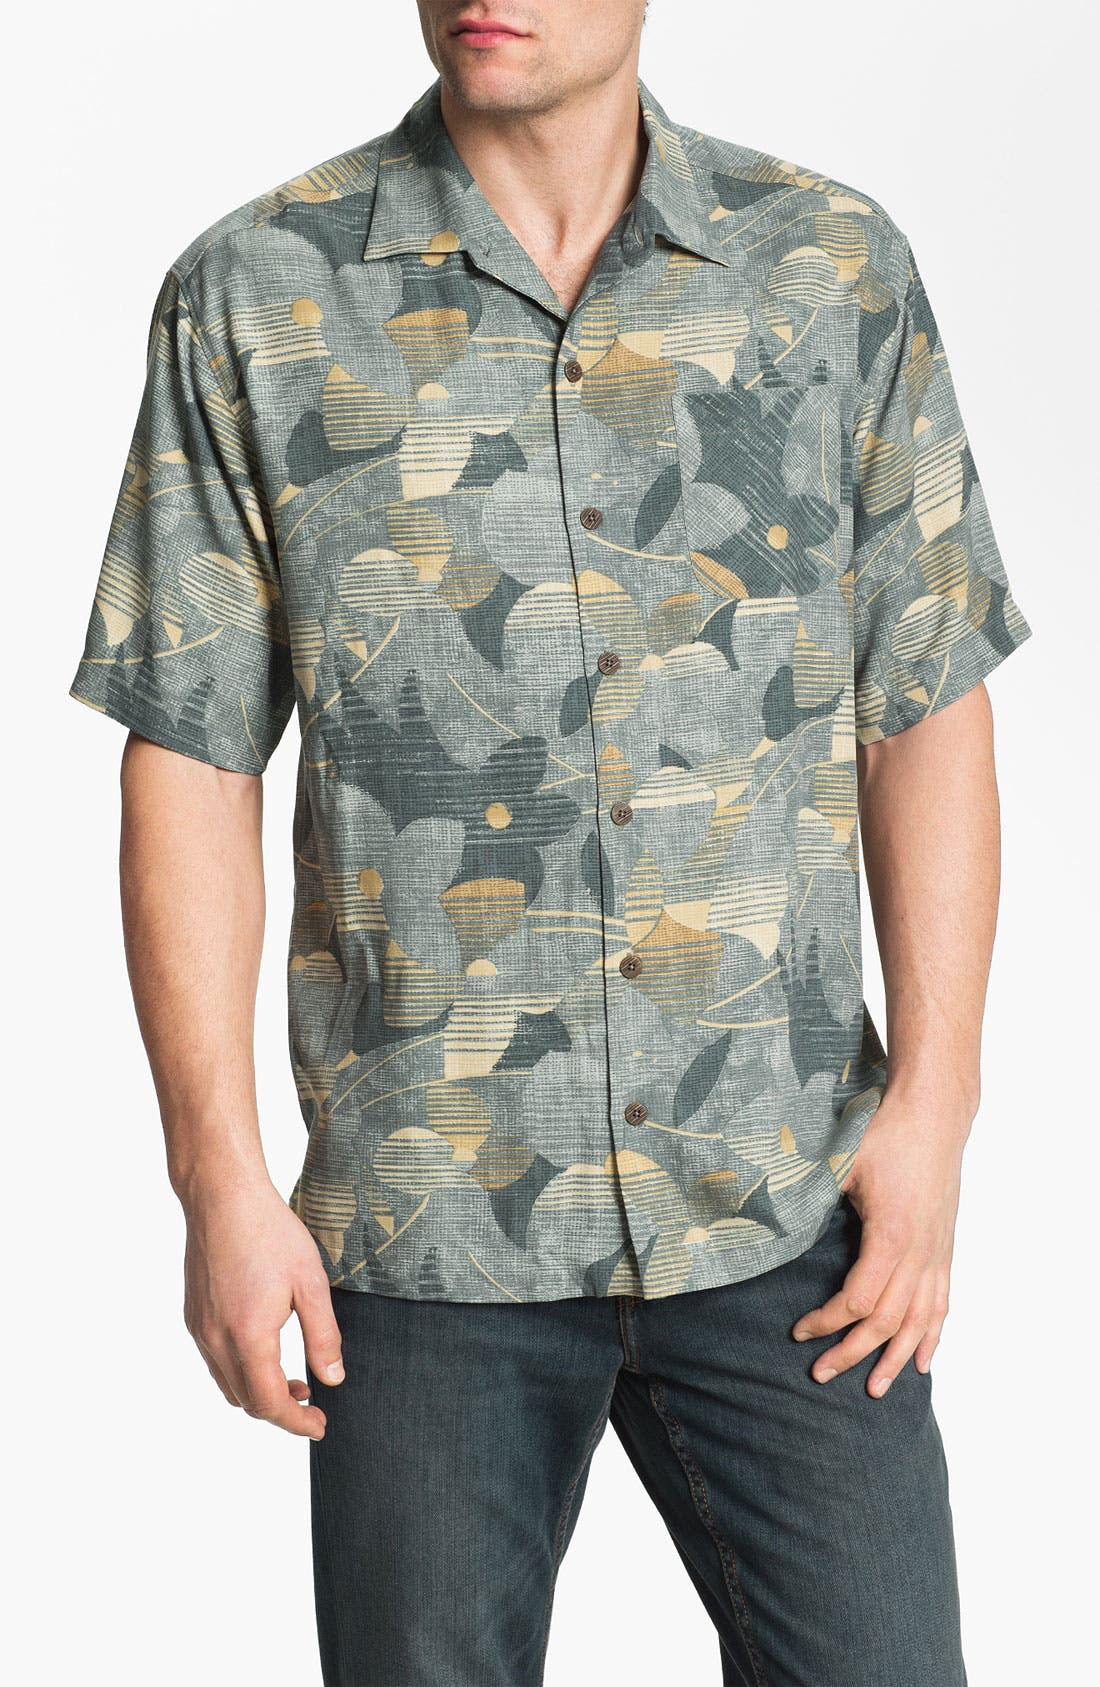 Alternate Image 1 Selected - Tommy Bahama 'Shore Excursion' Silk Campshirt